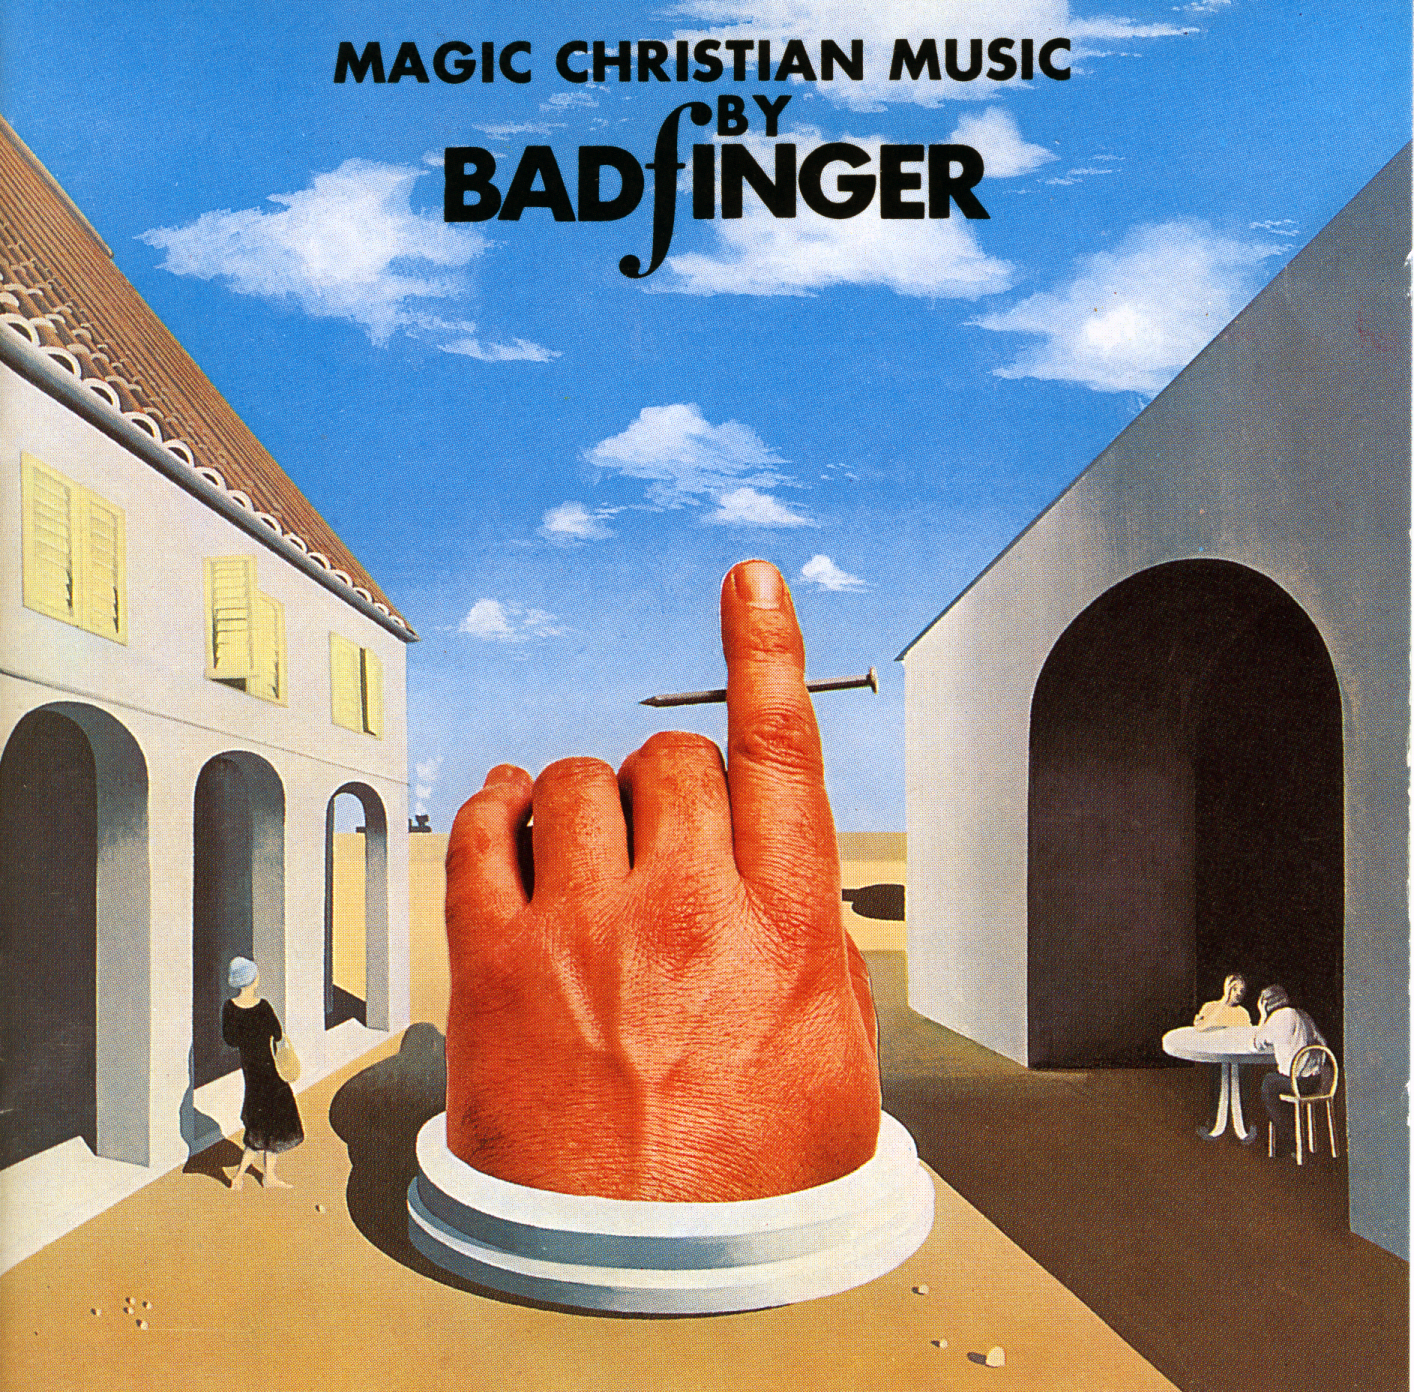 badfinger_magic_christian_music_1970.jpg